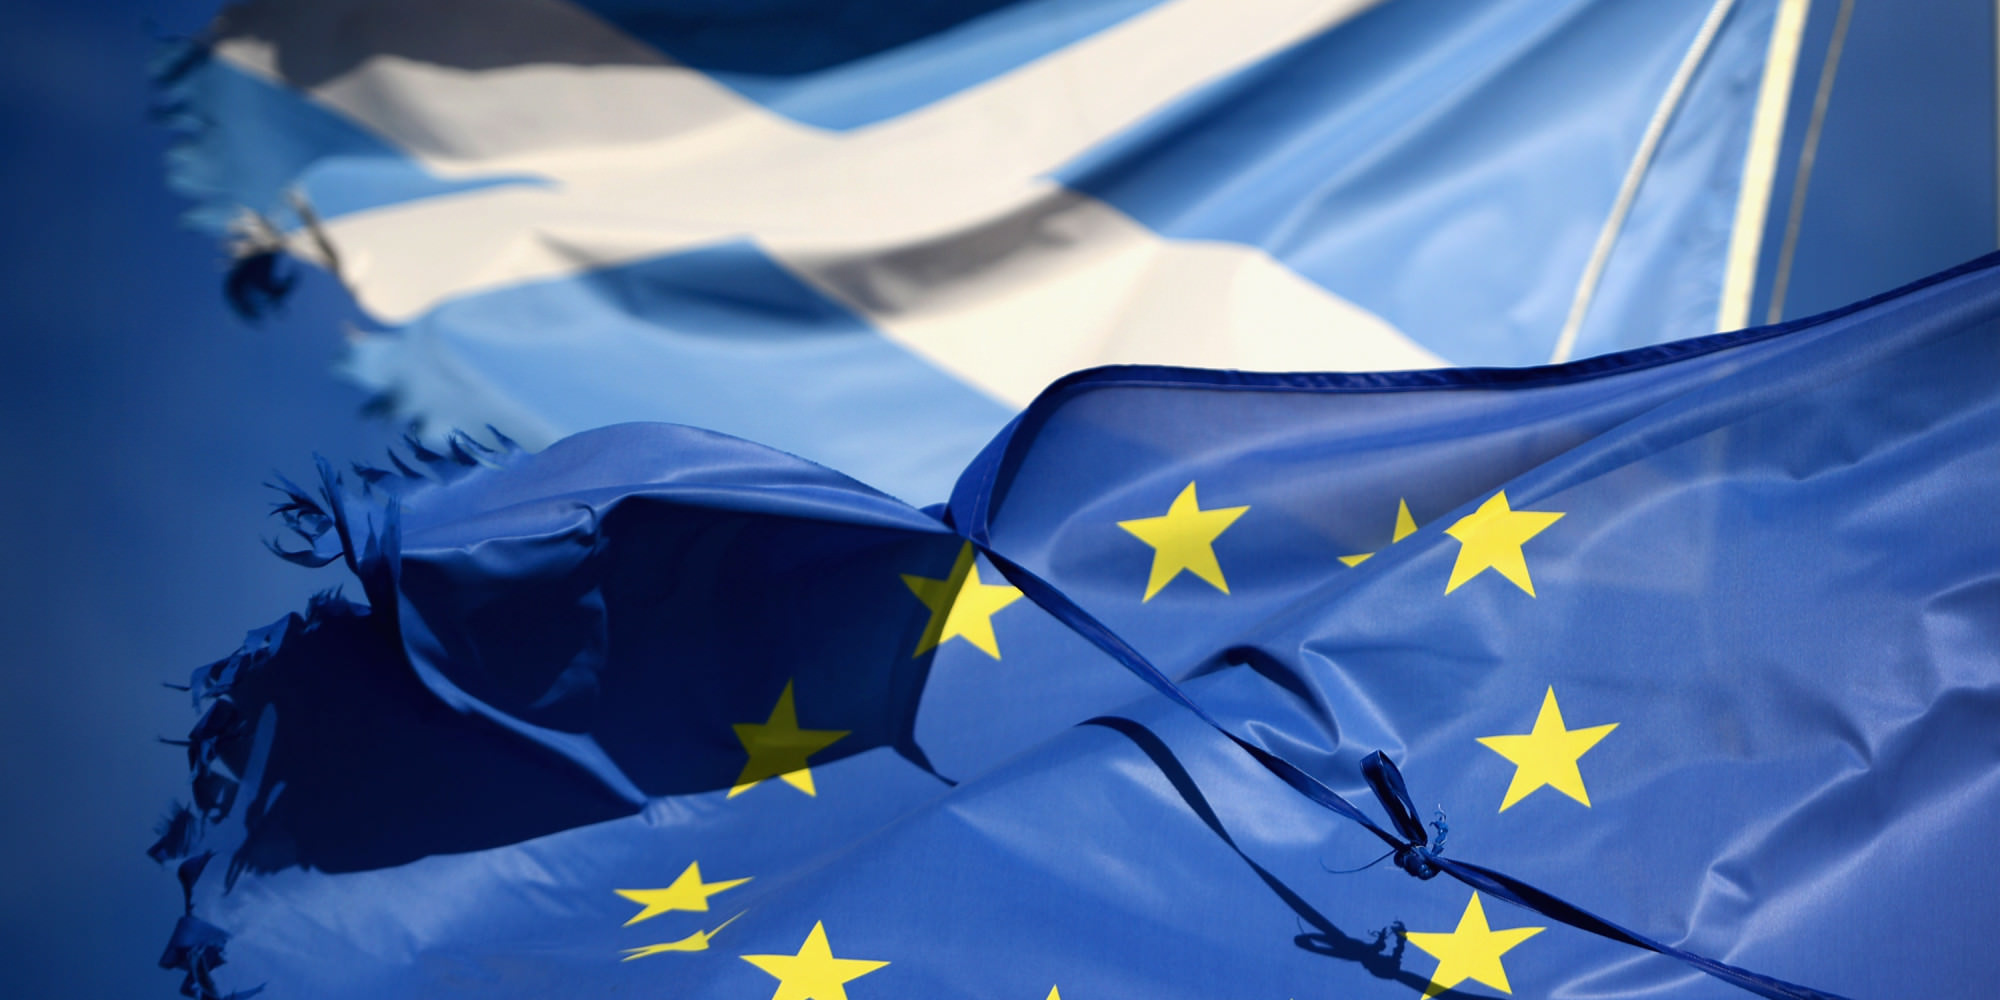 GLEN COE, SCOTLAND - MARCH 24: A European Union flag and Saltire flag blow in the wind near to Glen Coe on March 24, 2014 in Glen Coe, Scotland. A referendum on whether Scotland should be an independent country will take place on September 18, 2014. (Photo by Jeff J Mitchell/Getty Images)